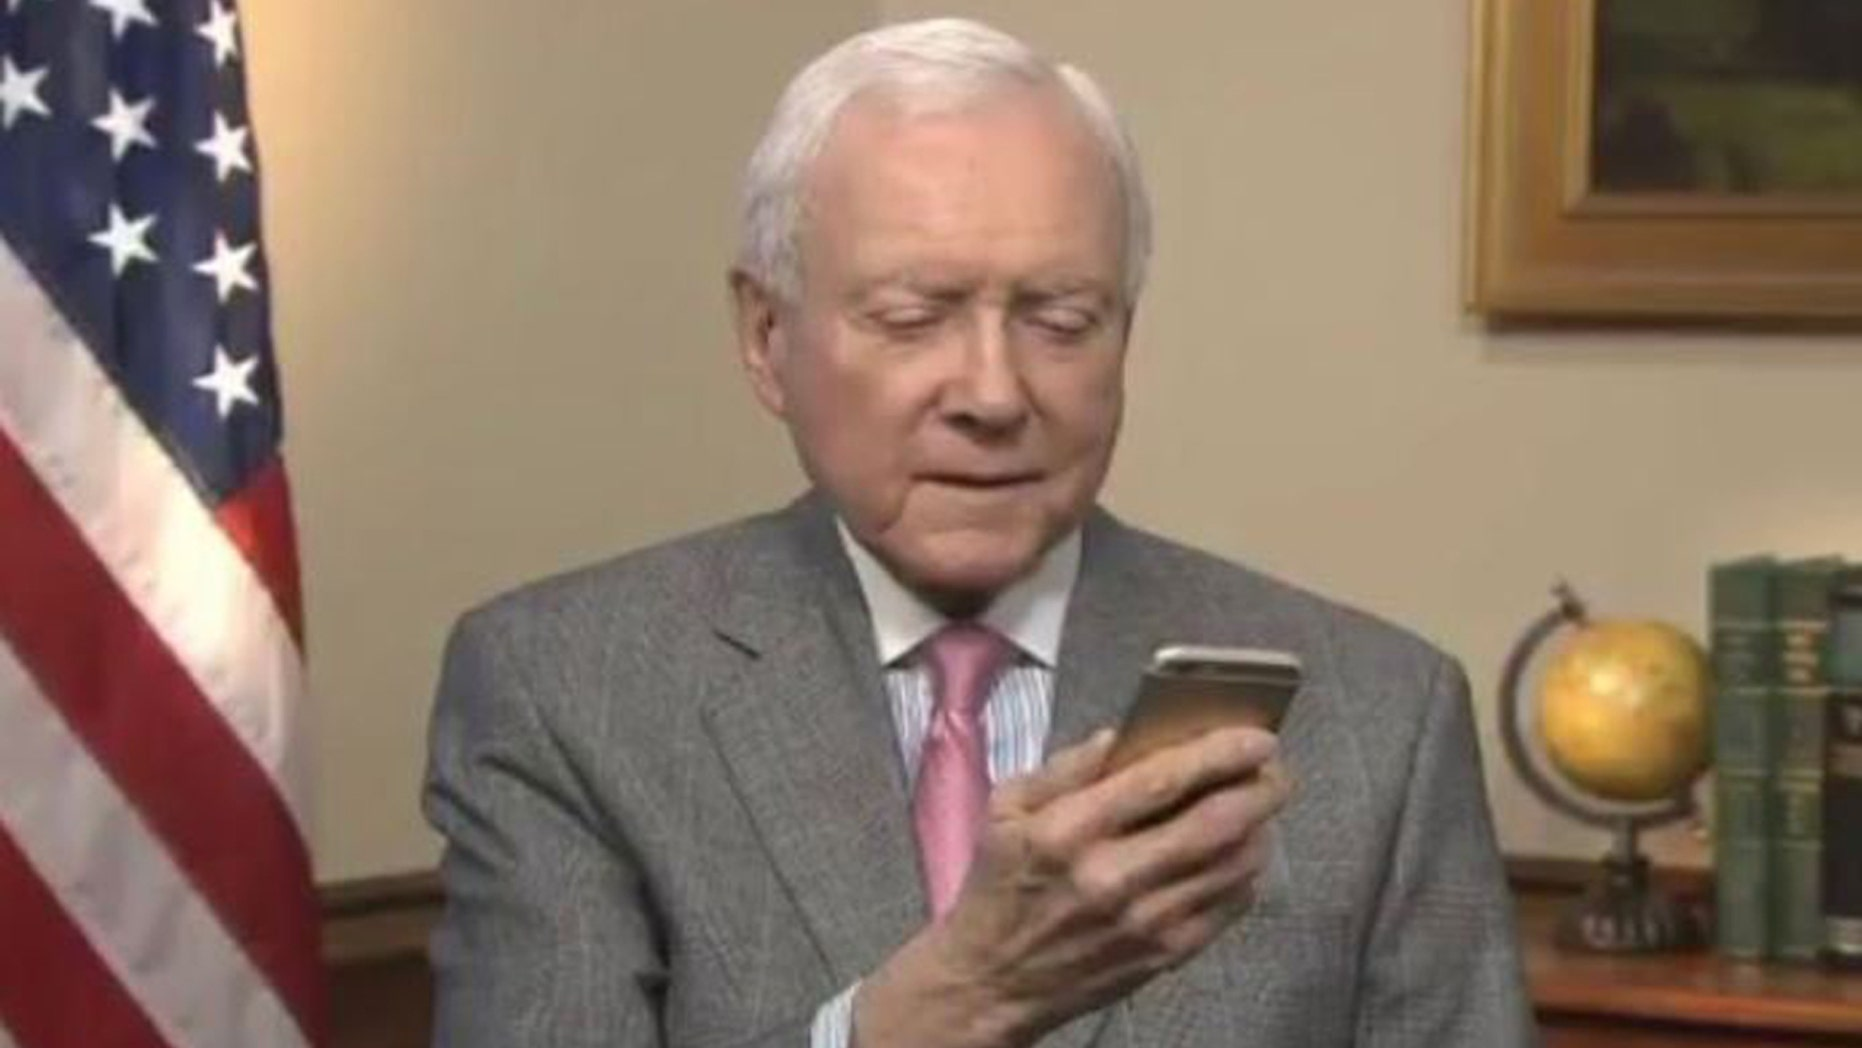 Sen. Orrin Hatch appears to look at his 1/1032 T-Rex DNA test results, in a picture he tweeted on Monday.